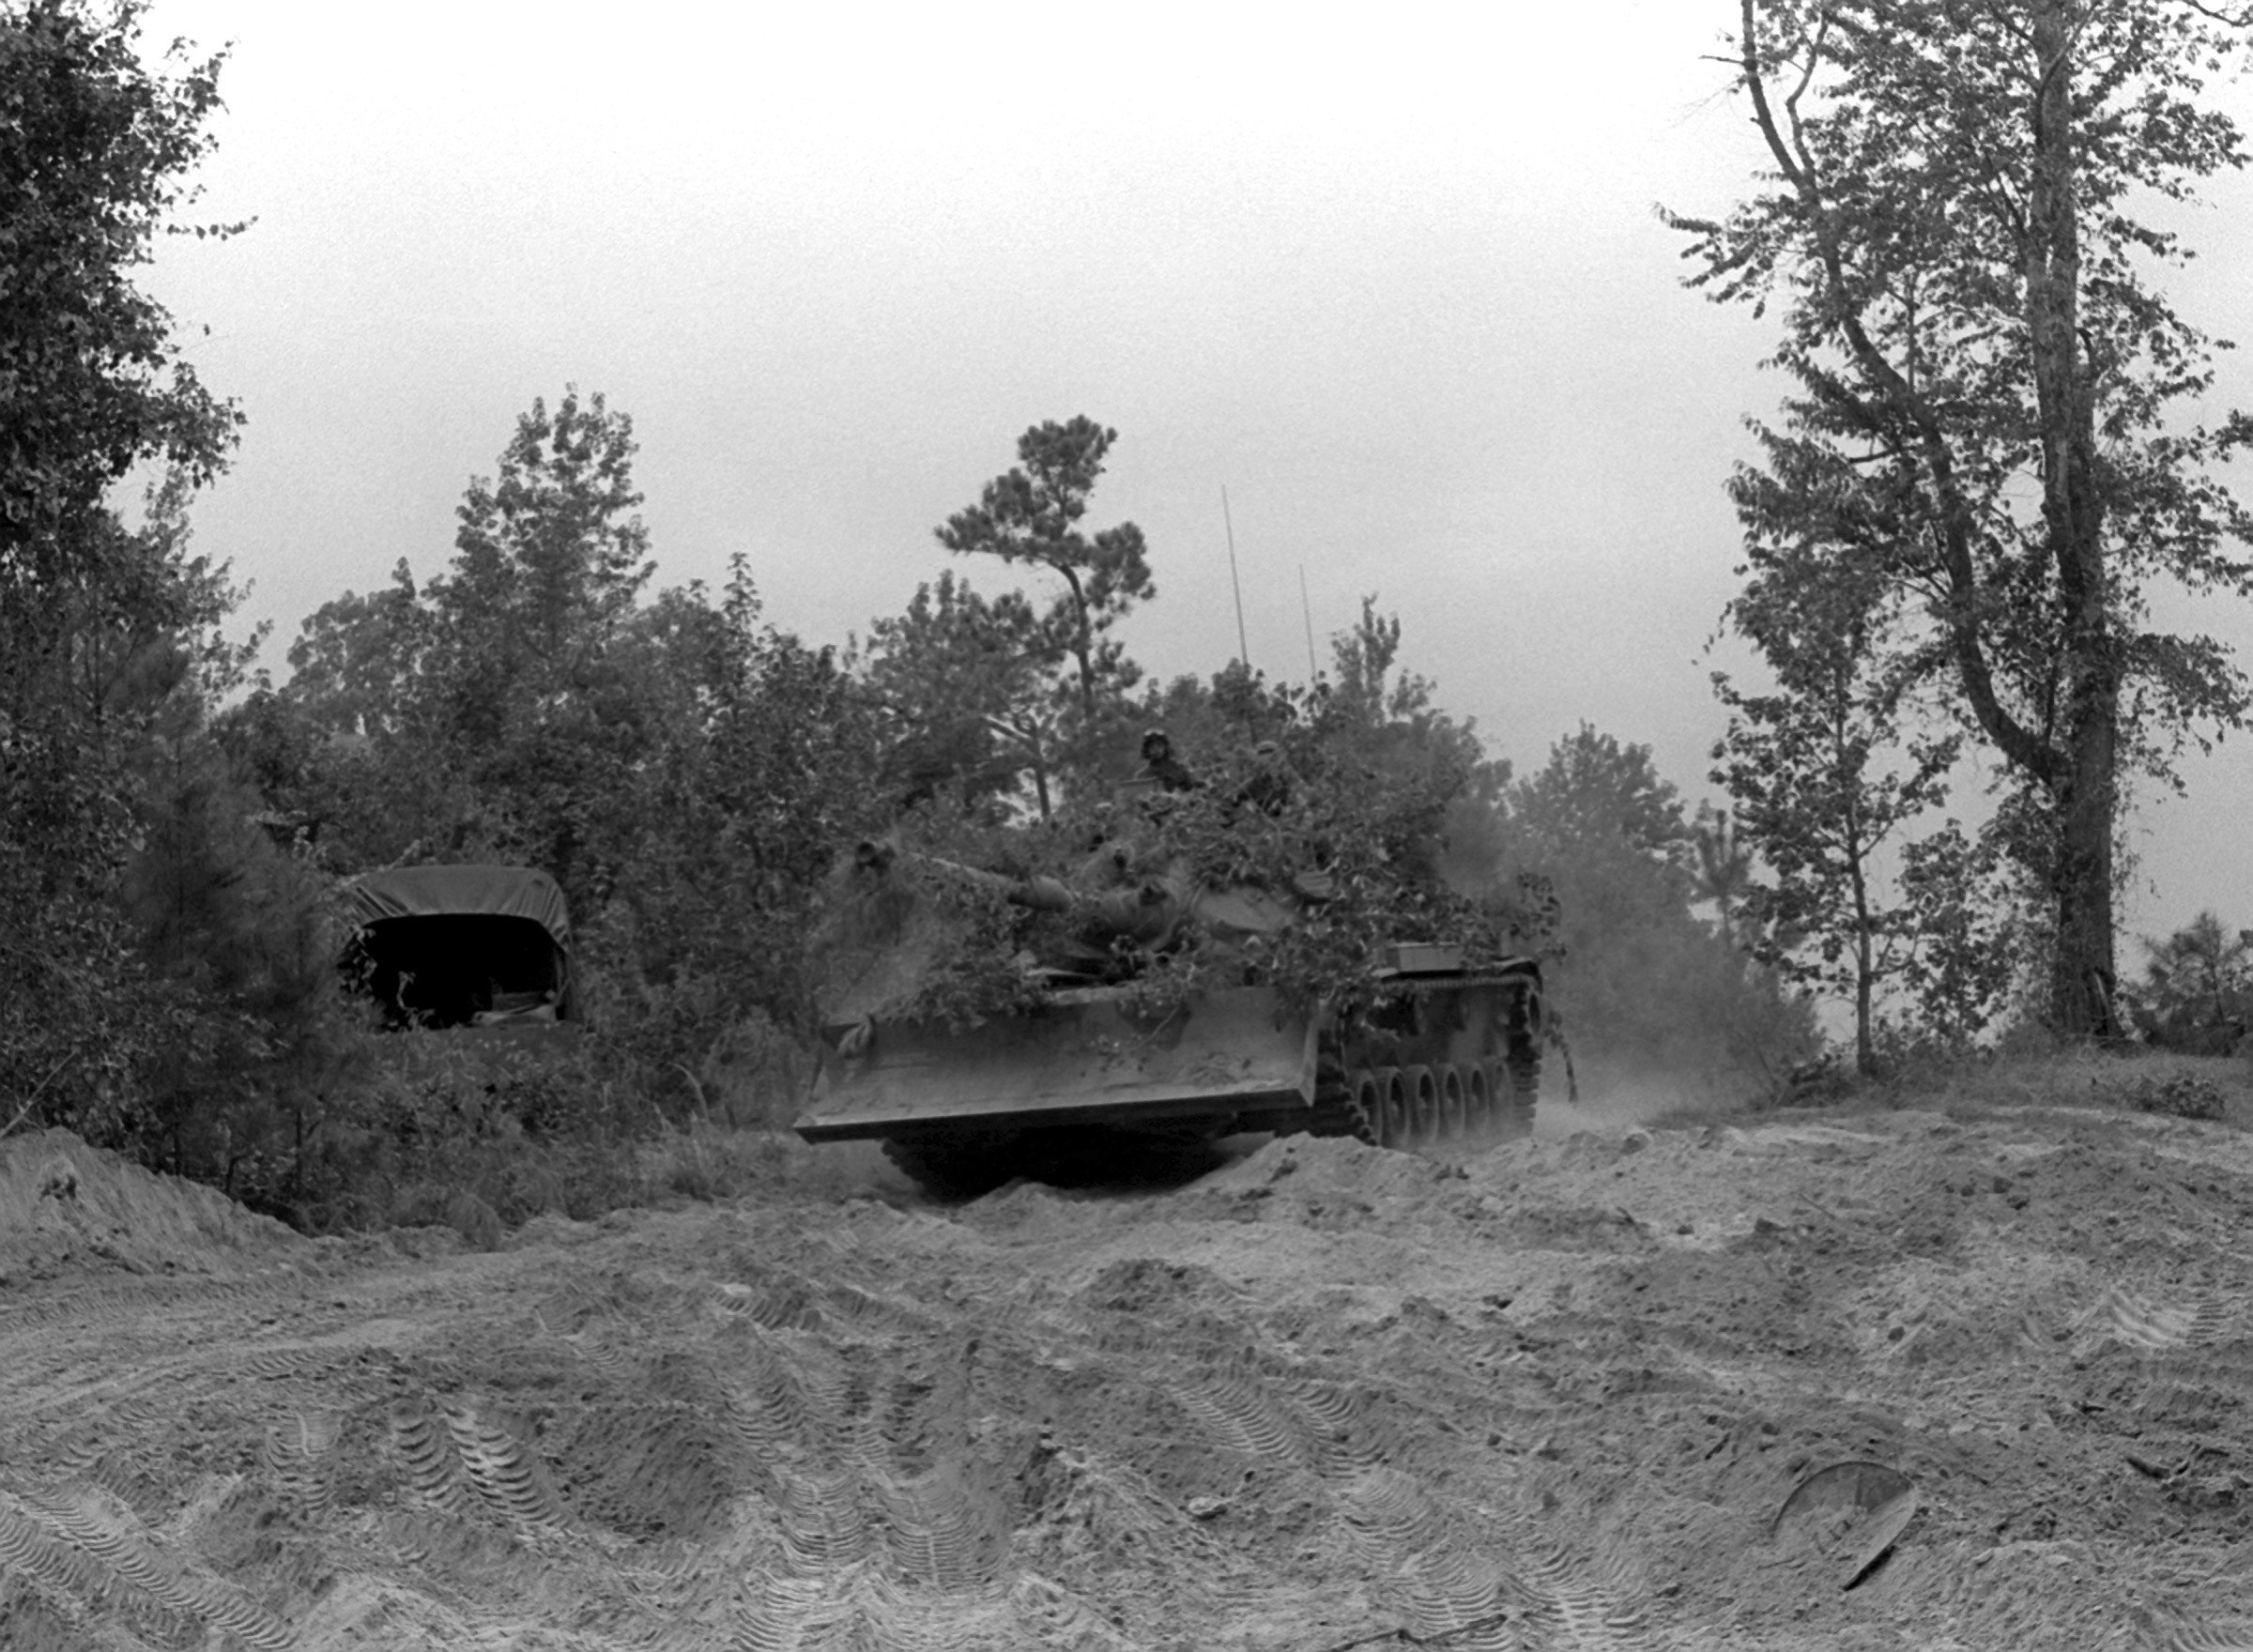 A camouflaged M-60A1 tank from the 8th Marines advances during an exercise